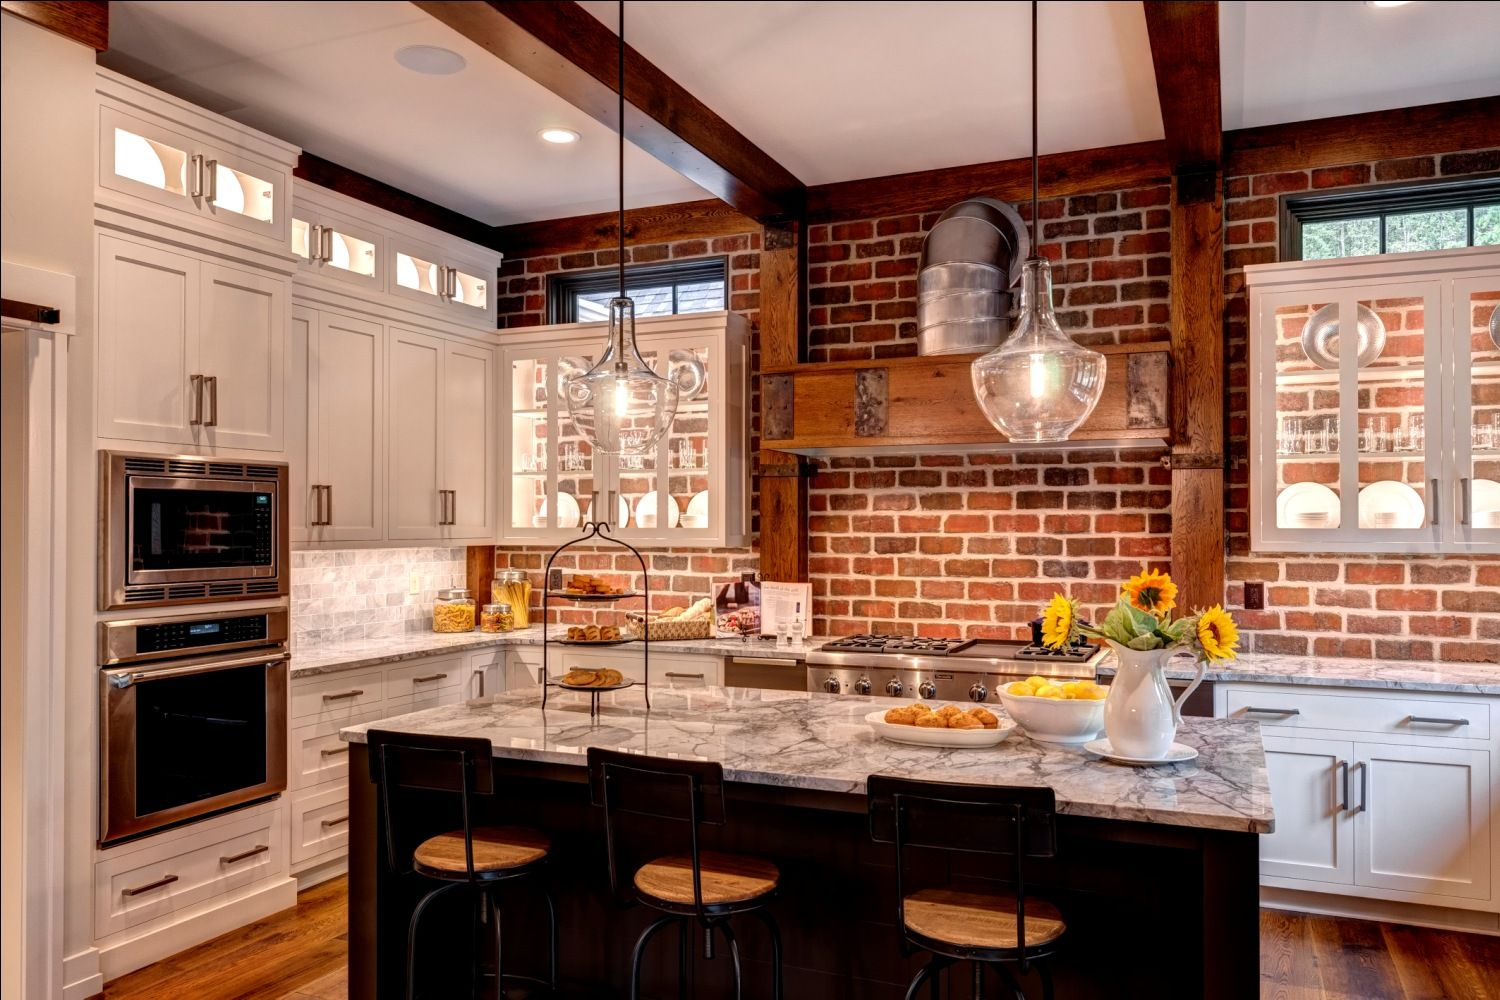 Brick Wall In Kitchen With White Cabinets Glass Cabinet Doors To Exposed Brick Gray Accent In